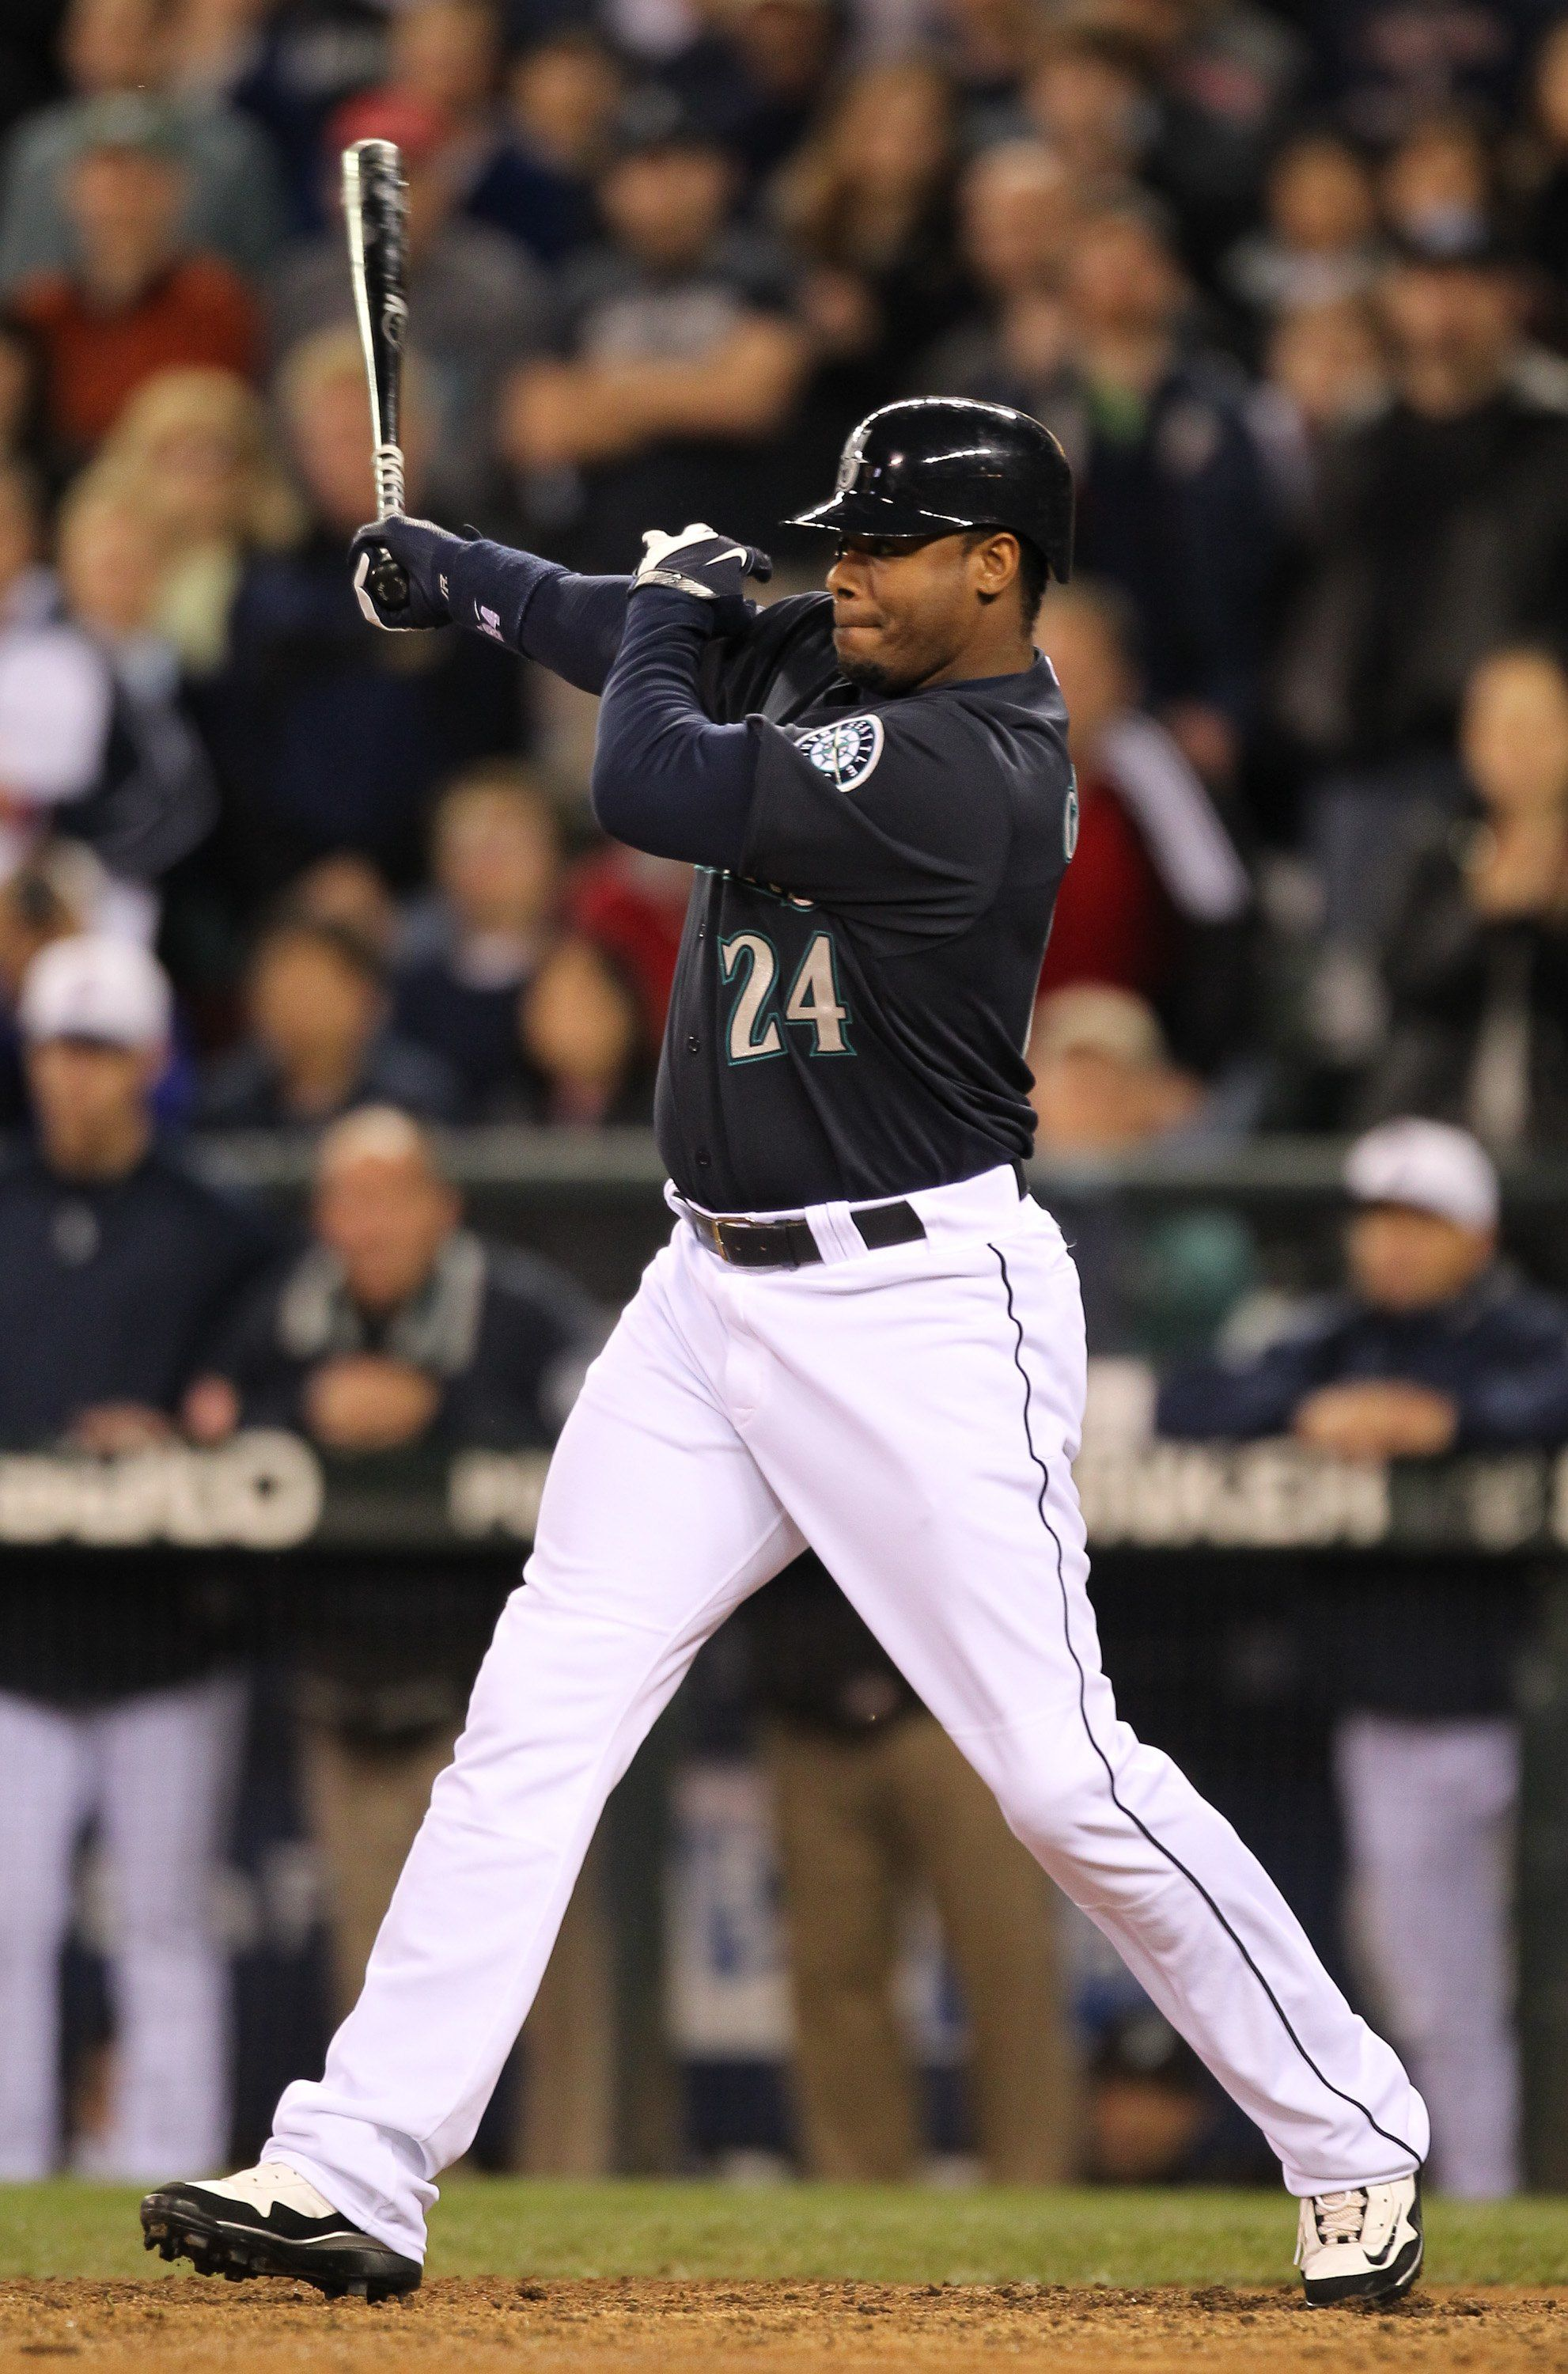 affe6d9e4b Ken Griffey Jr. he has the Best Swing Ever and my favorite baseball player  ever.